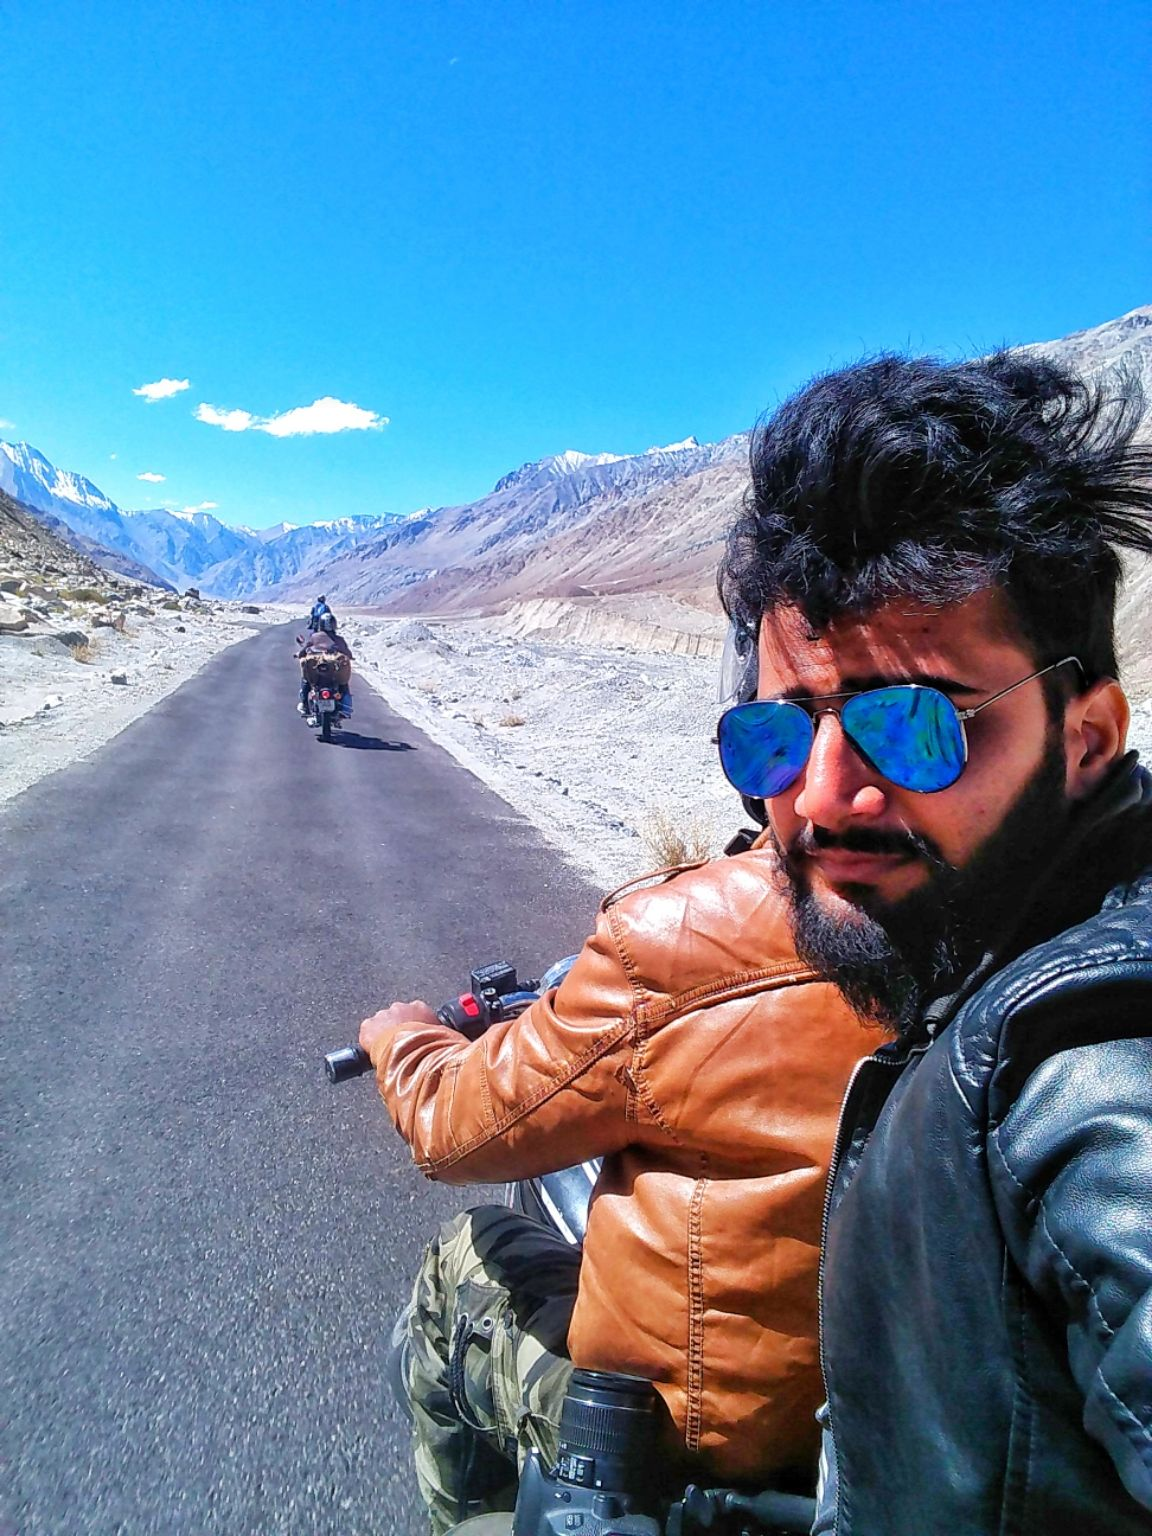 Photo of Leh Ladakh Tours and Travels - Frozen Highway By Sibtain